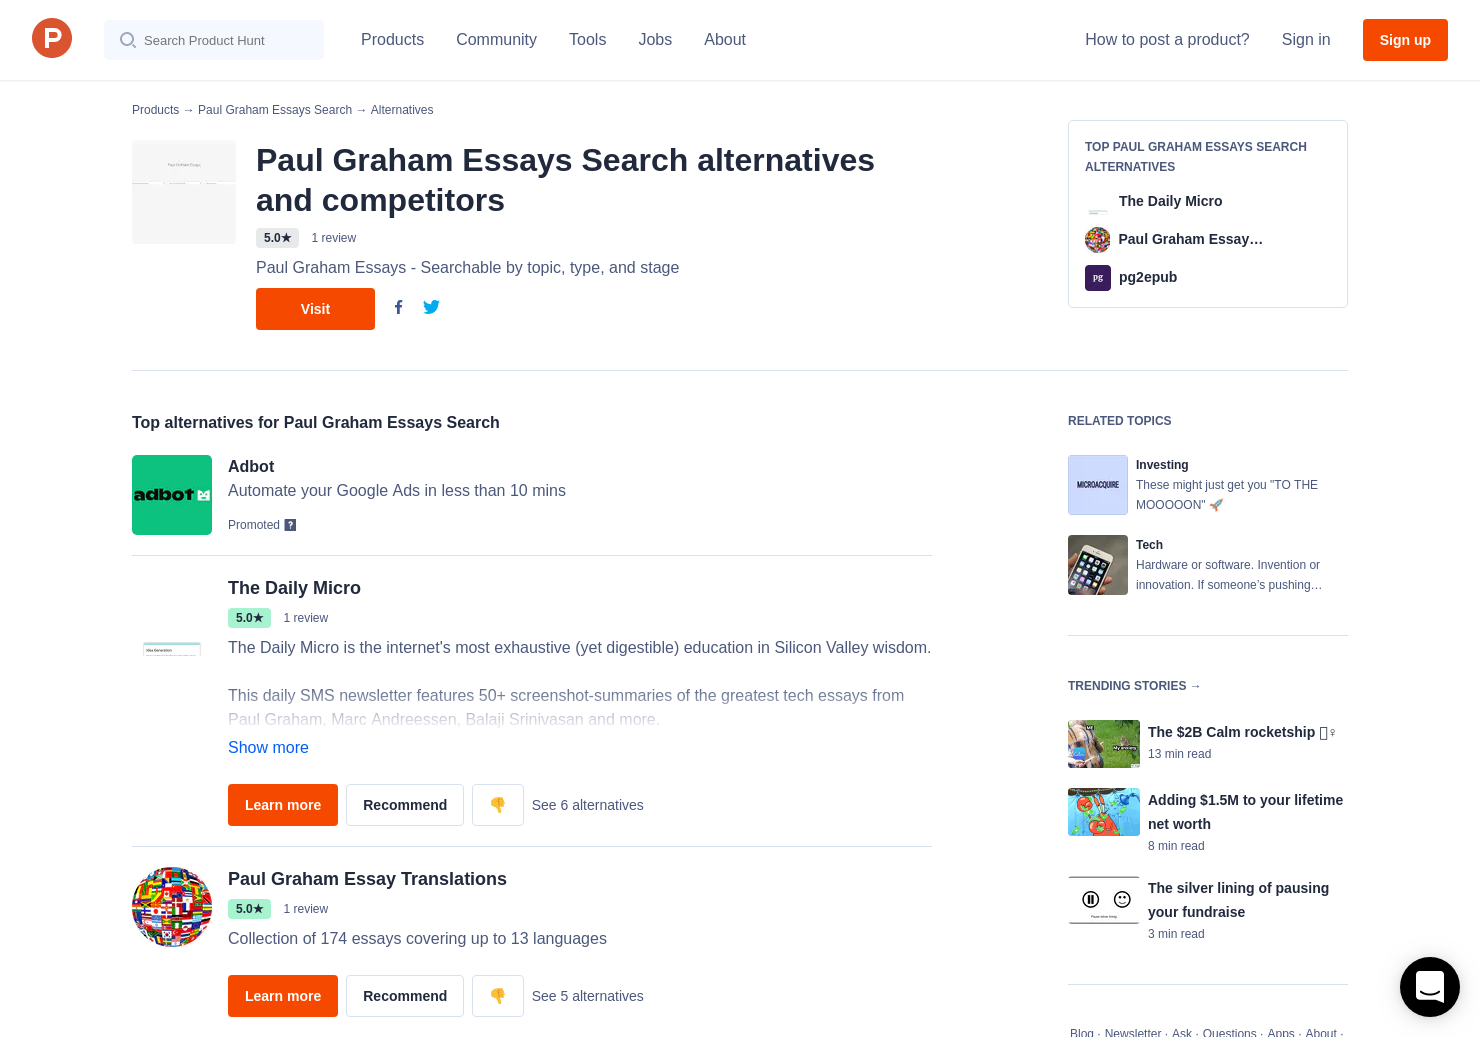 2 Alternatives to Paul Graham Essays Search - Product Hunt